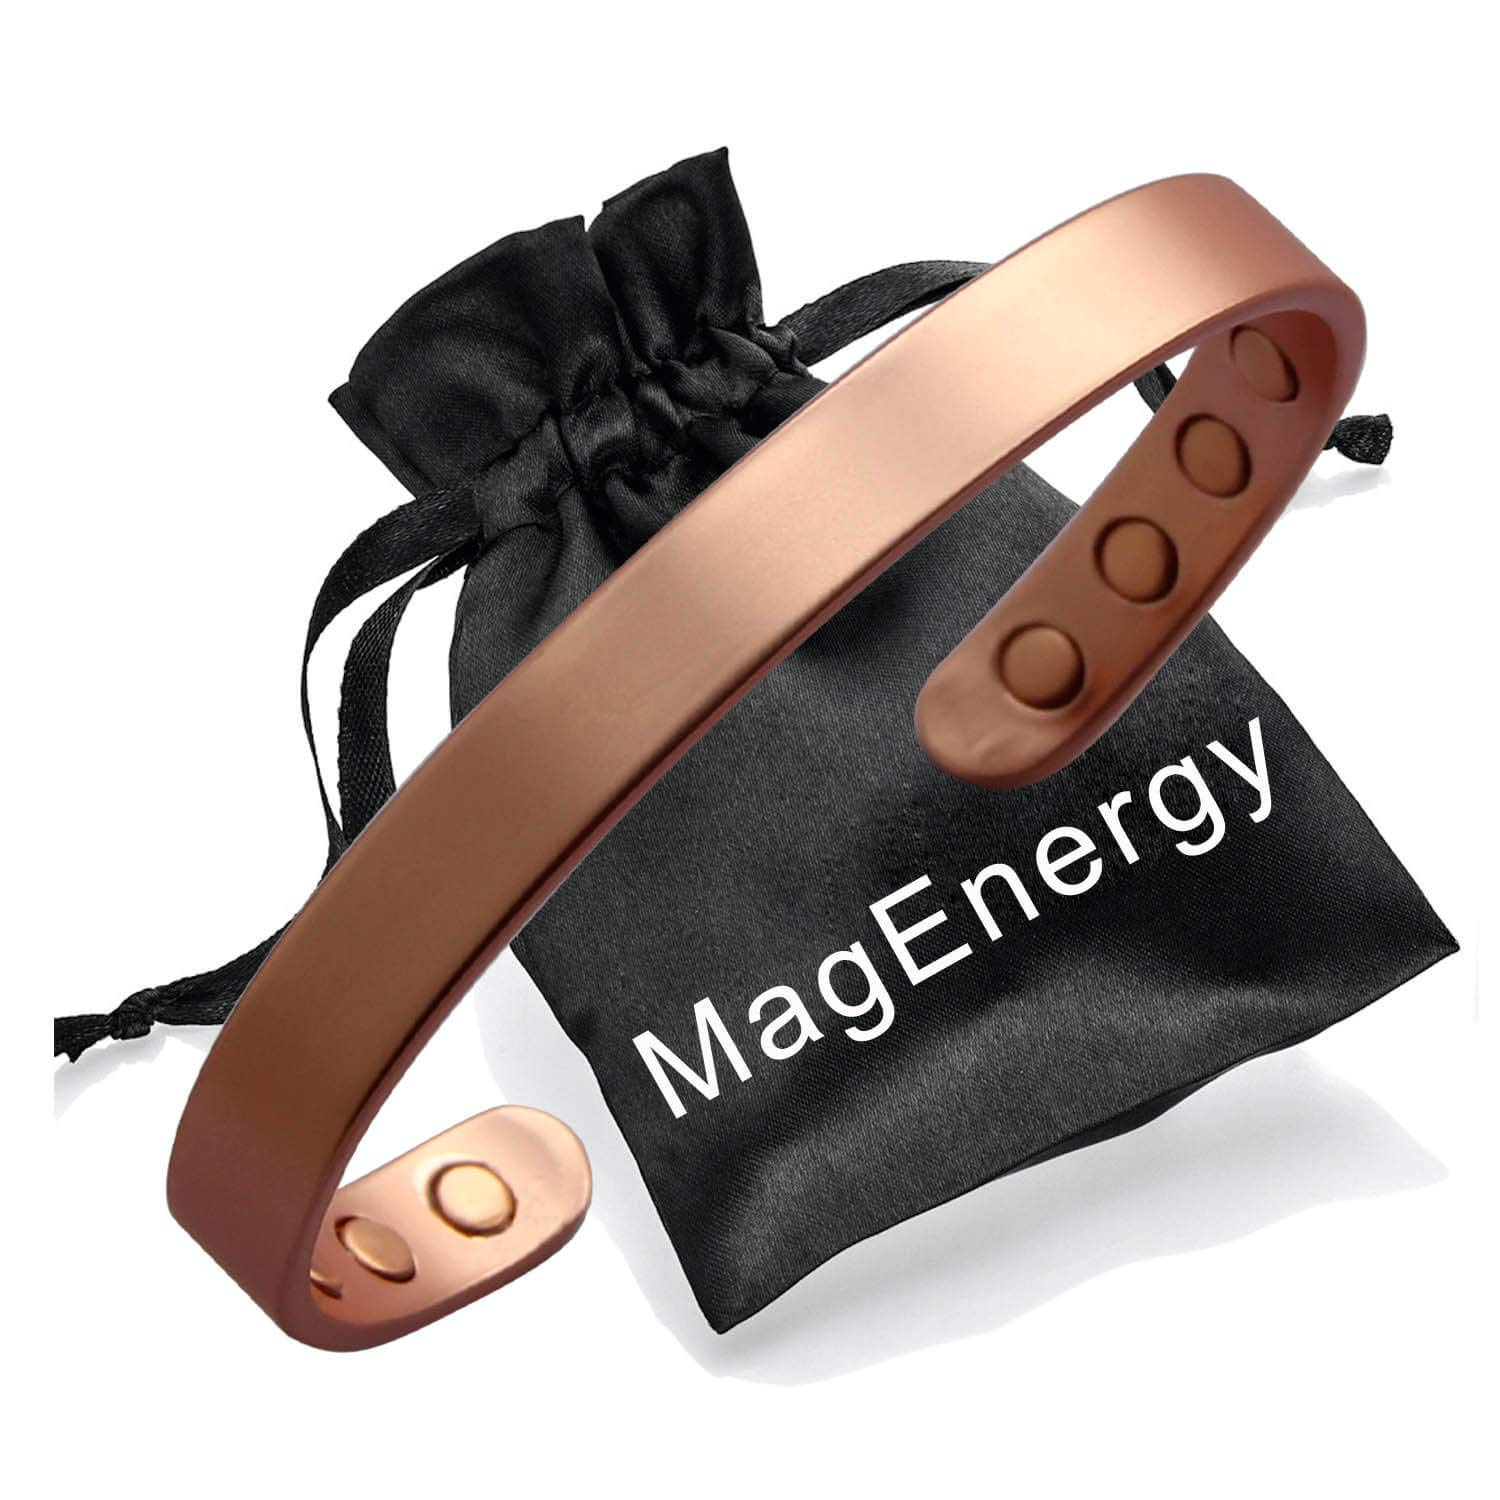 Copper Bracelet for Men and Women 99.9% Pure Copper Bangle 6.5'' Adjustable for Arthritis with 8 Magnets for Effective Joint Pain Relief, Arthritis, RSI, Carpal Tunnel by MagEnergy